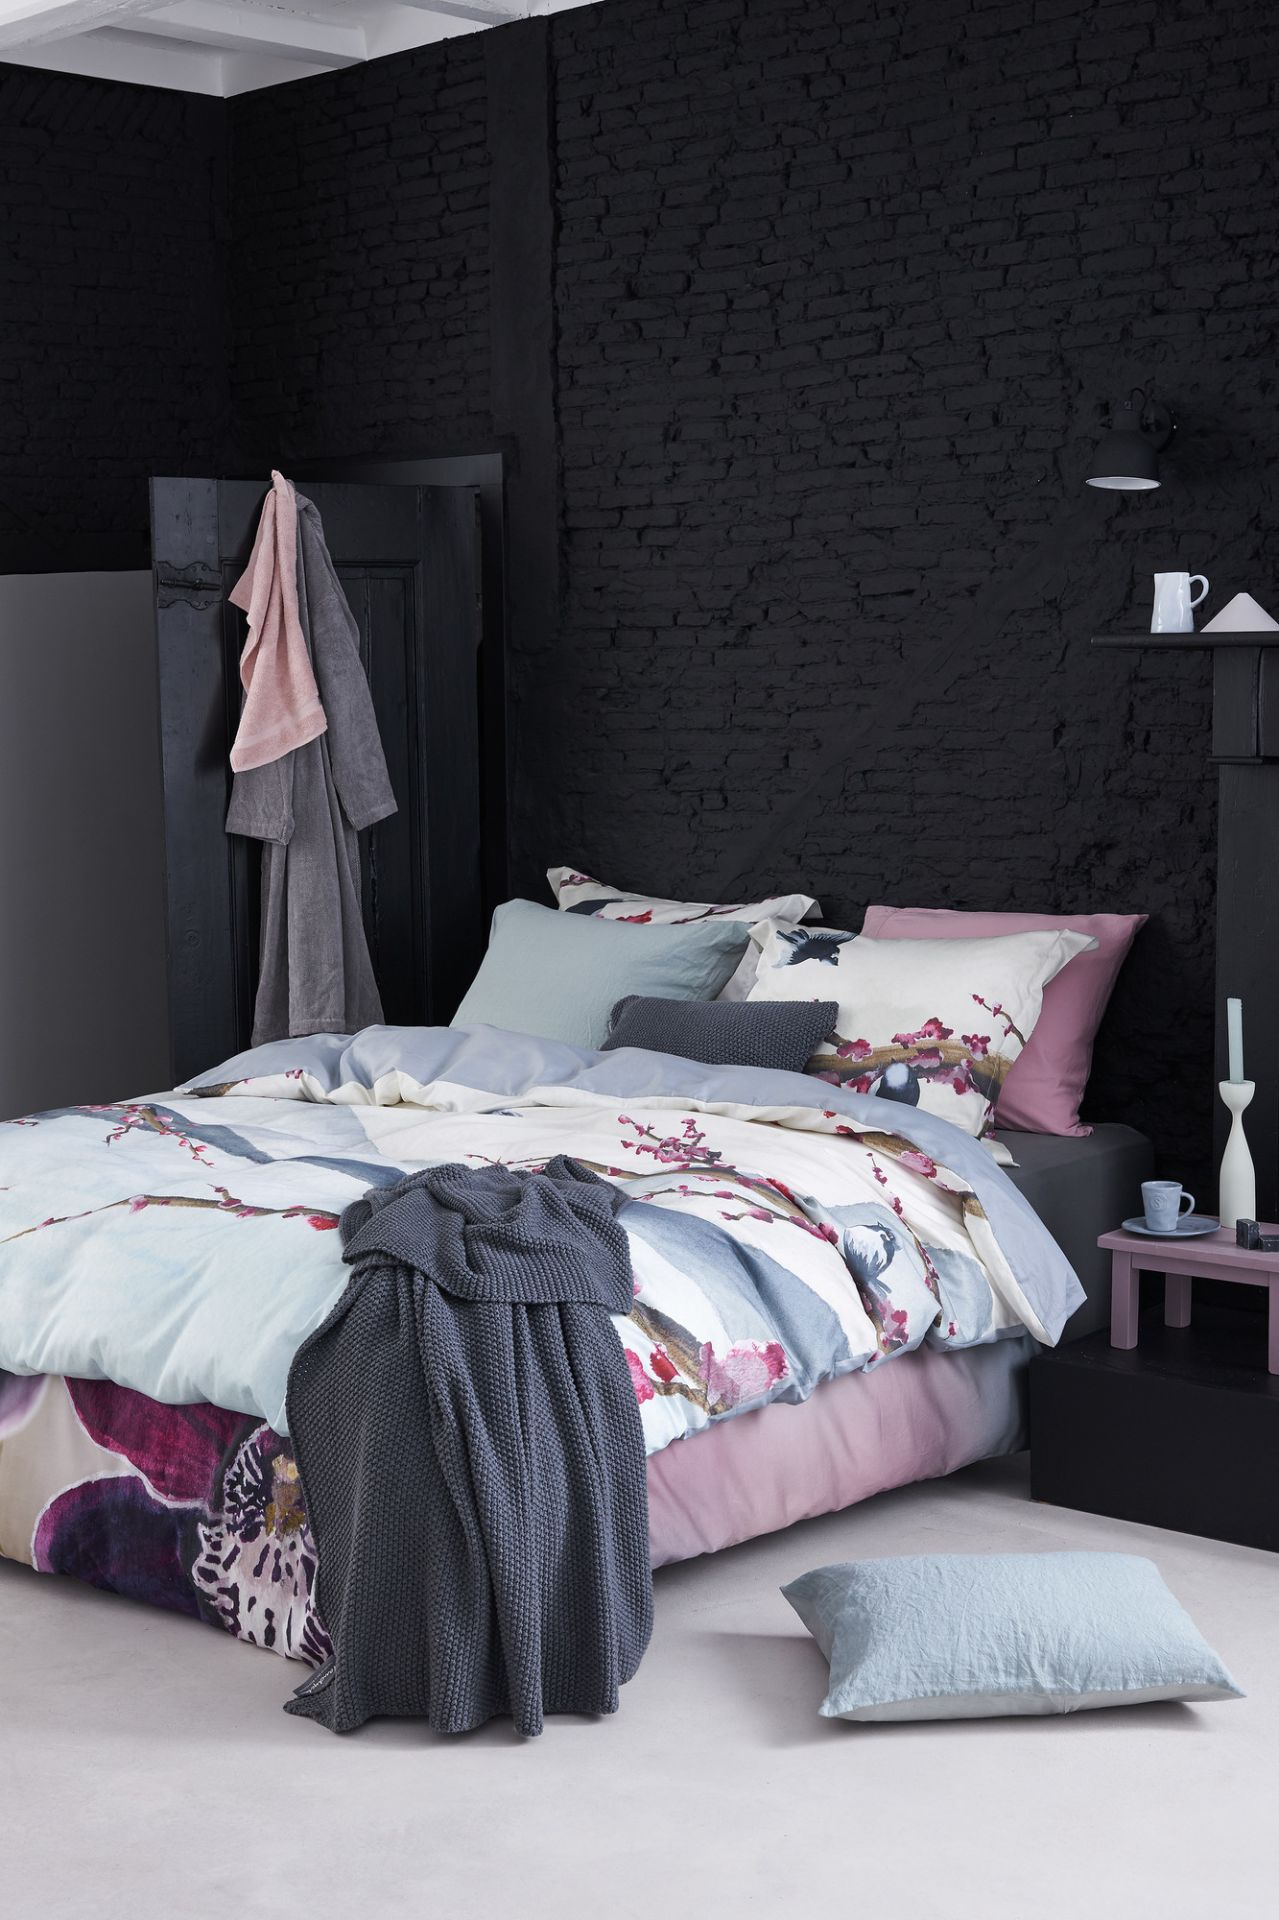 VanDyck bedtextiel Bright Orchid 000 Multi, Mountain Life 000 Multi, Purity 79 402 cel green, Home 60 001 Mole grey, Pure 7 144 sepia pink bij Slaapkenner Lute in Limmen